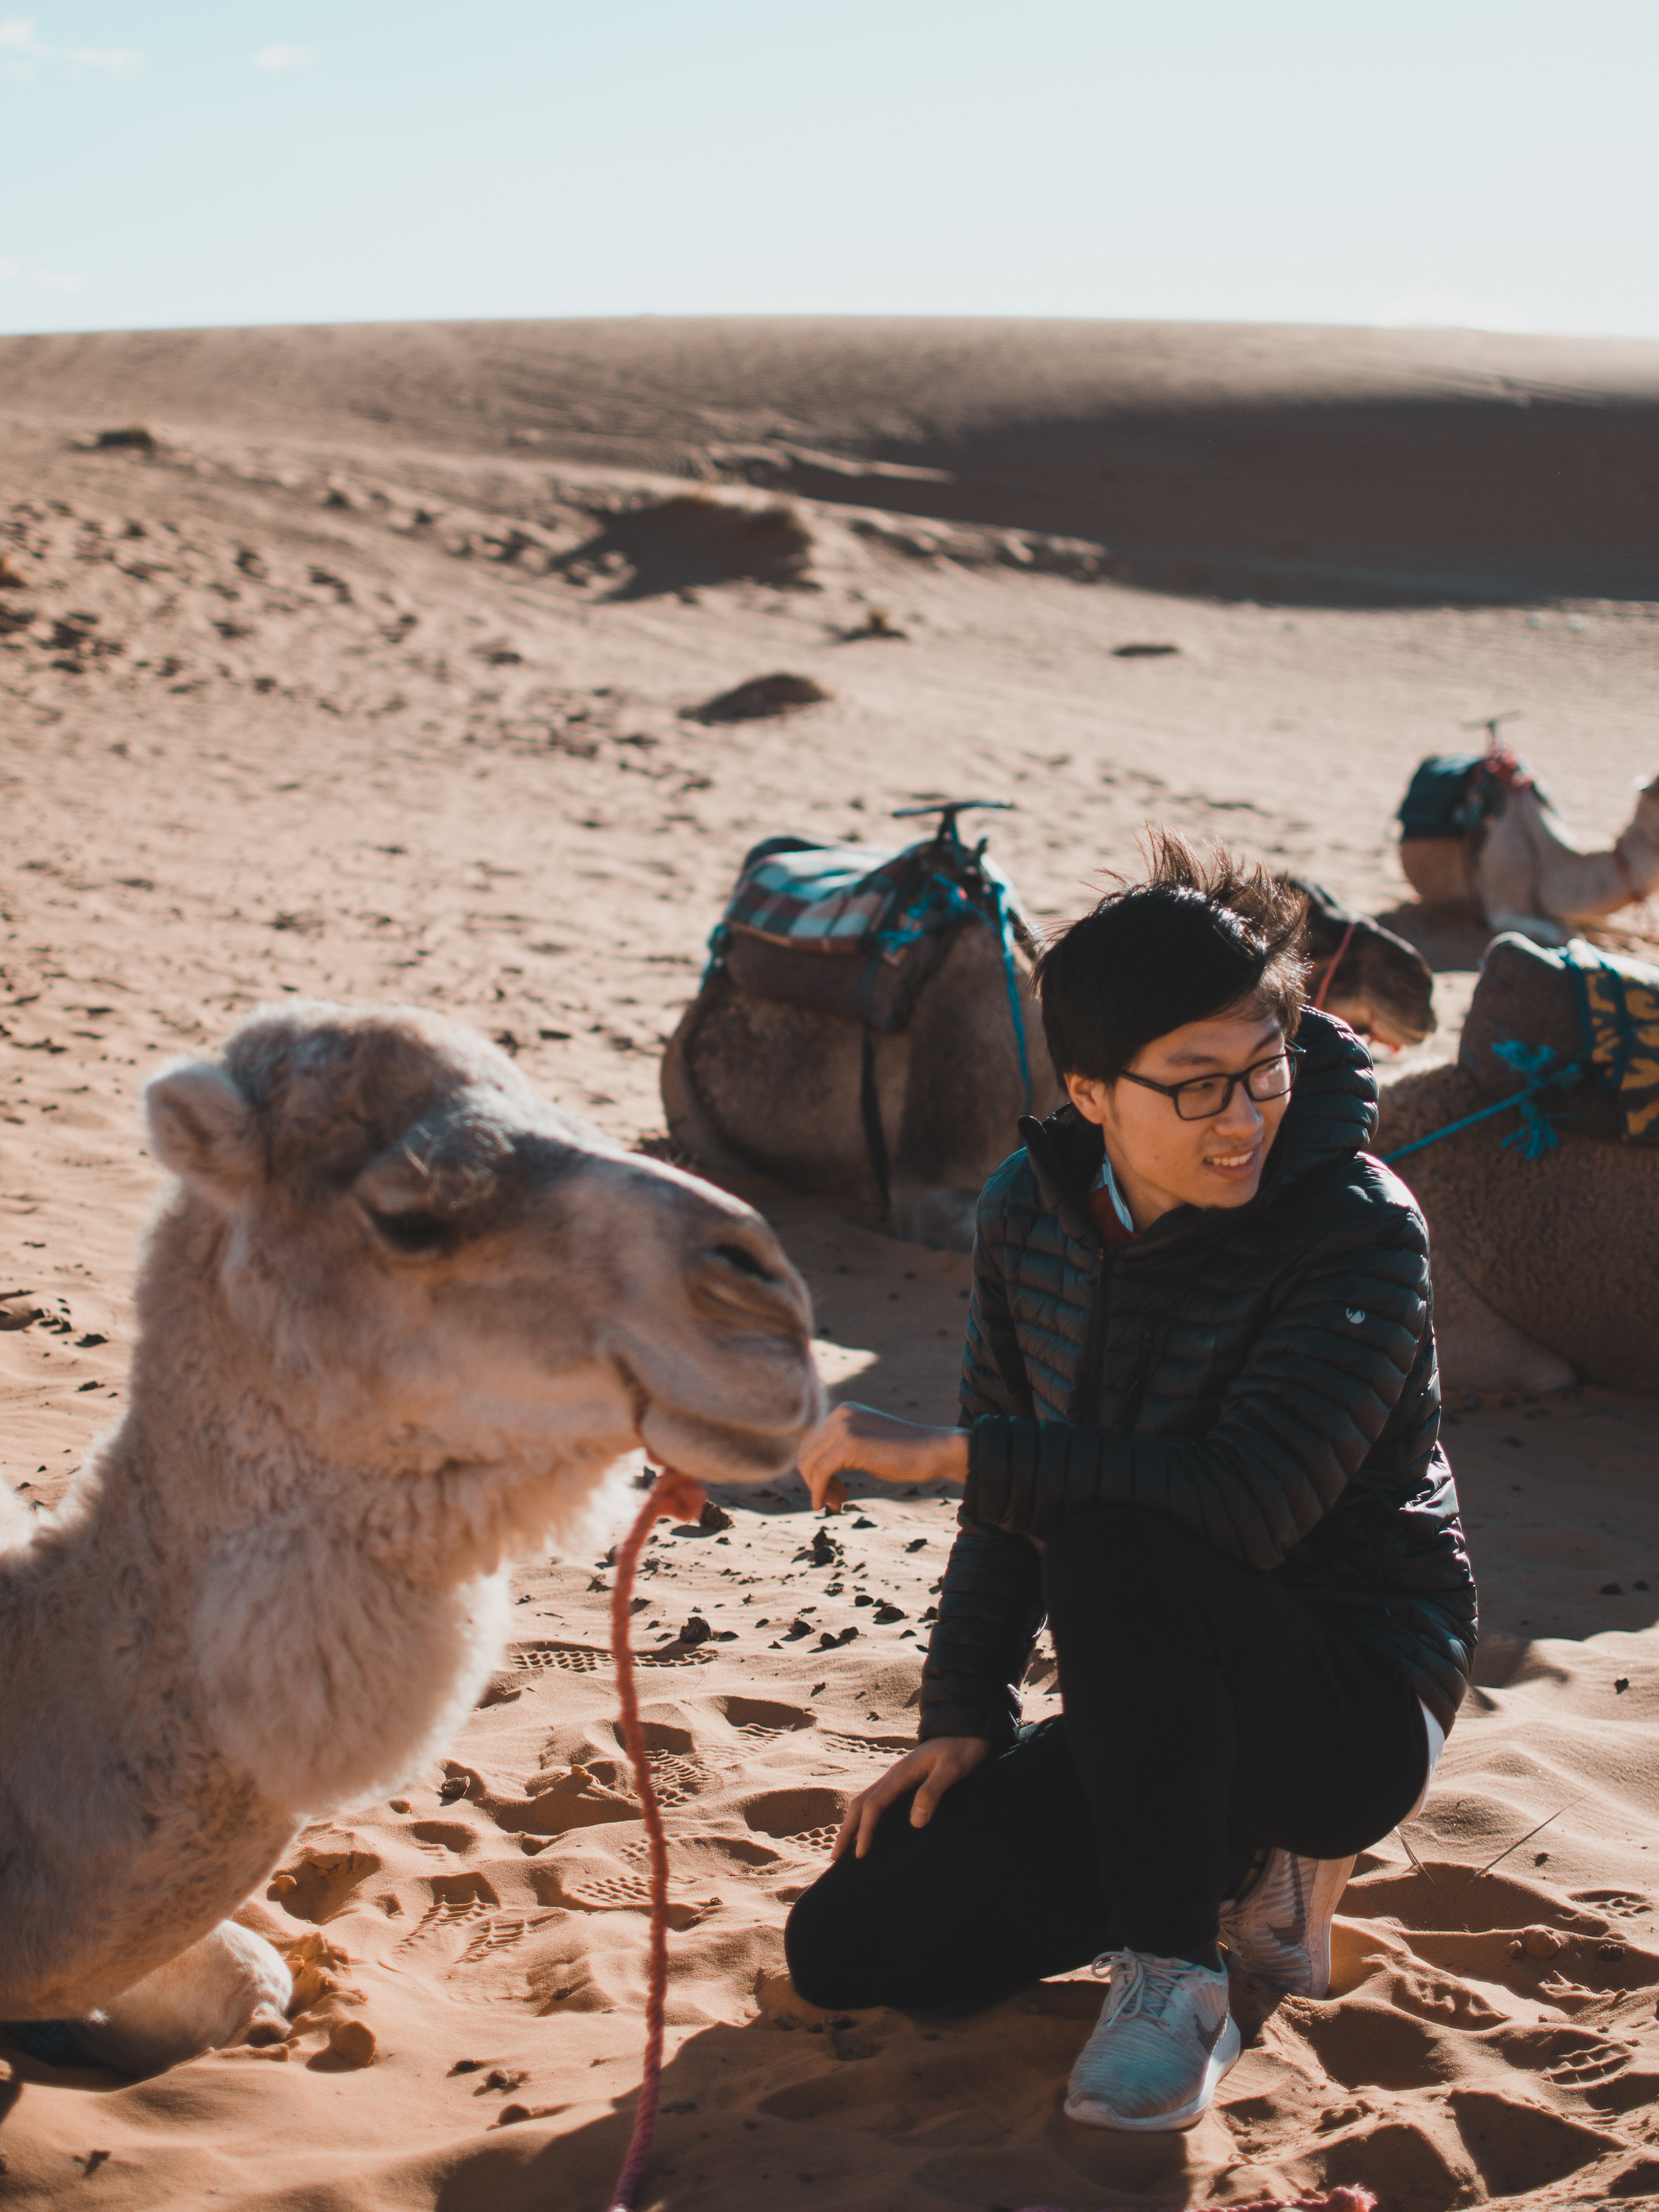 Pack a warm winter coat for a winter trip to Morocco